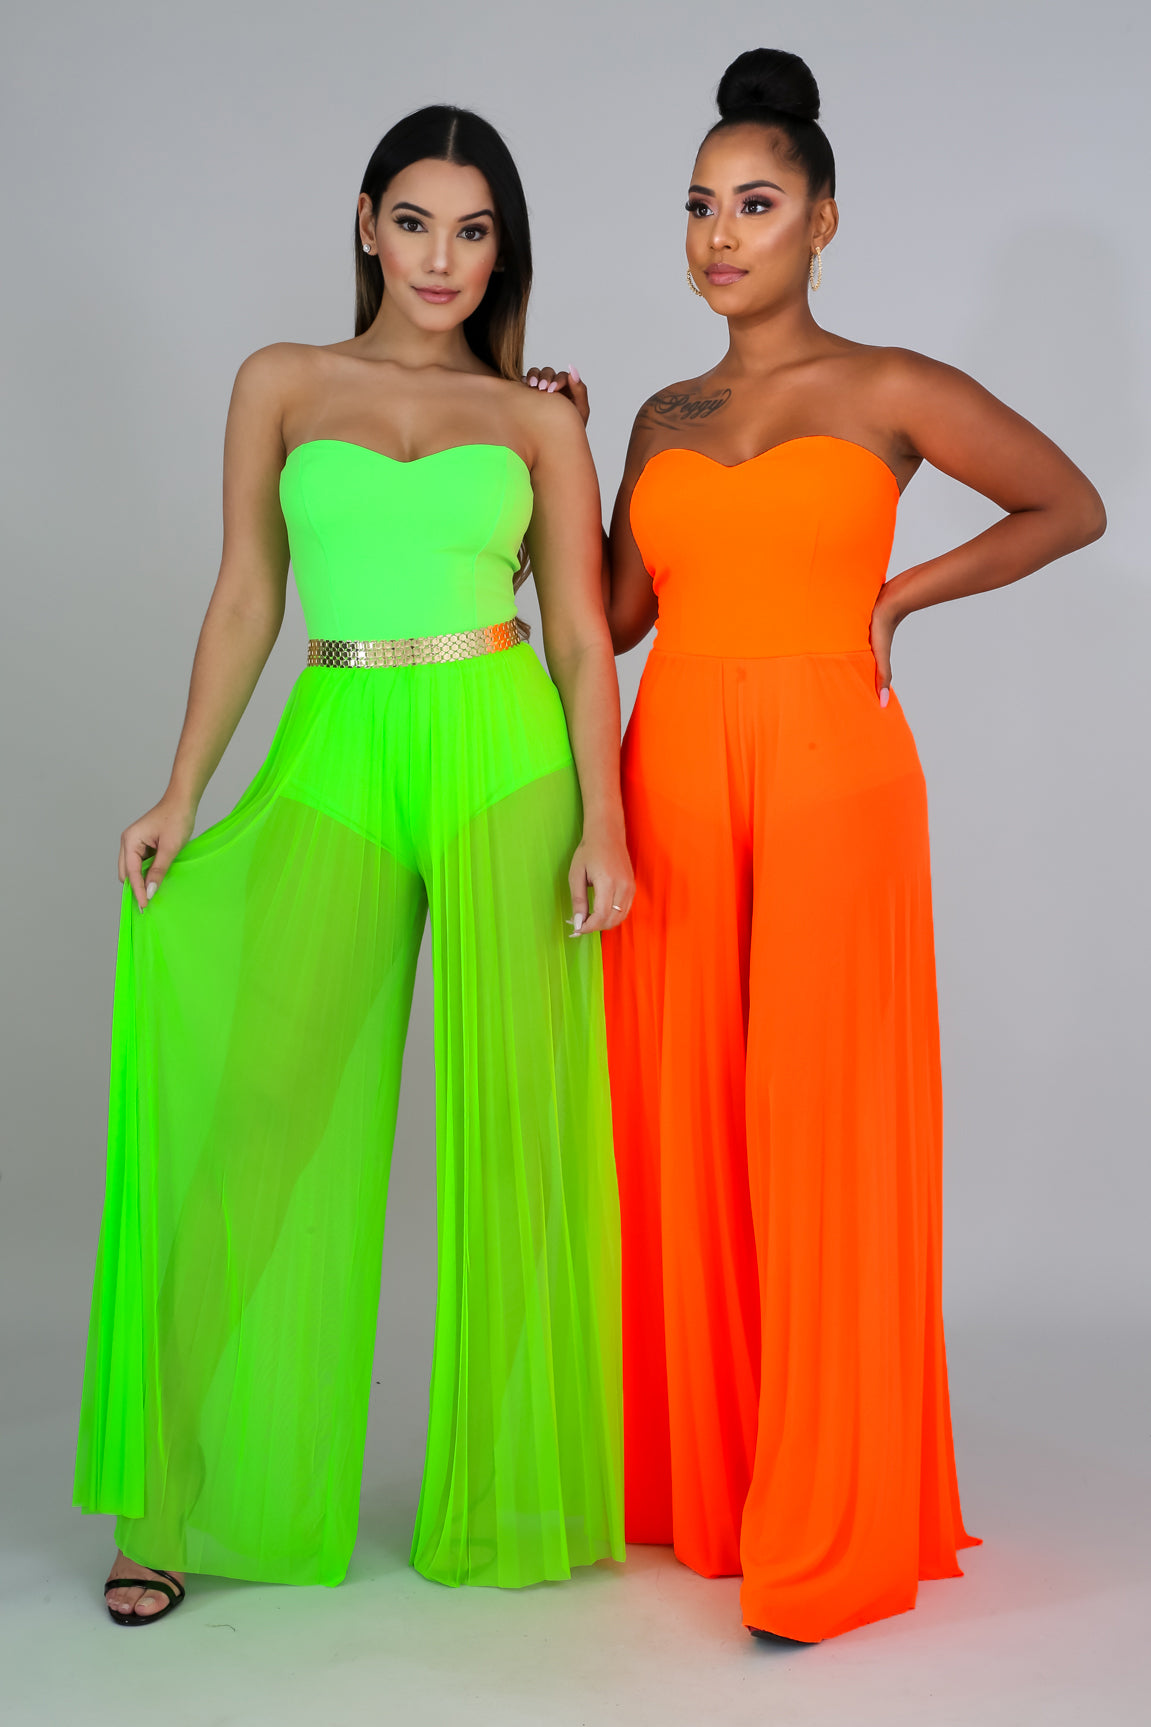 Karina Orange Neon Sheer Pleated Jumper